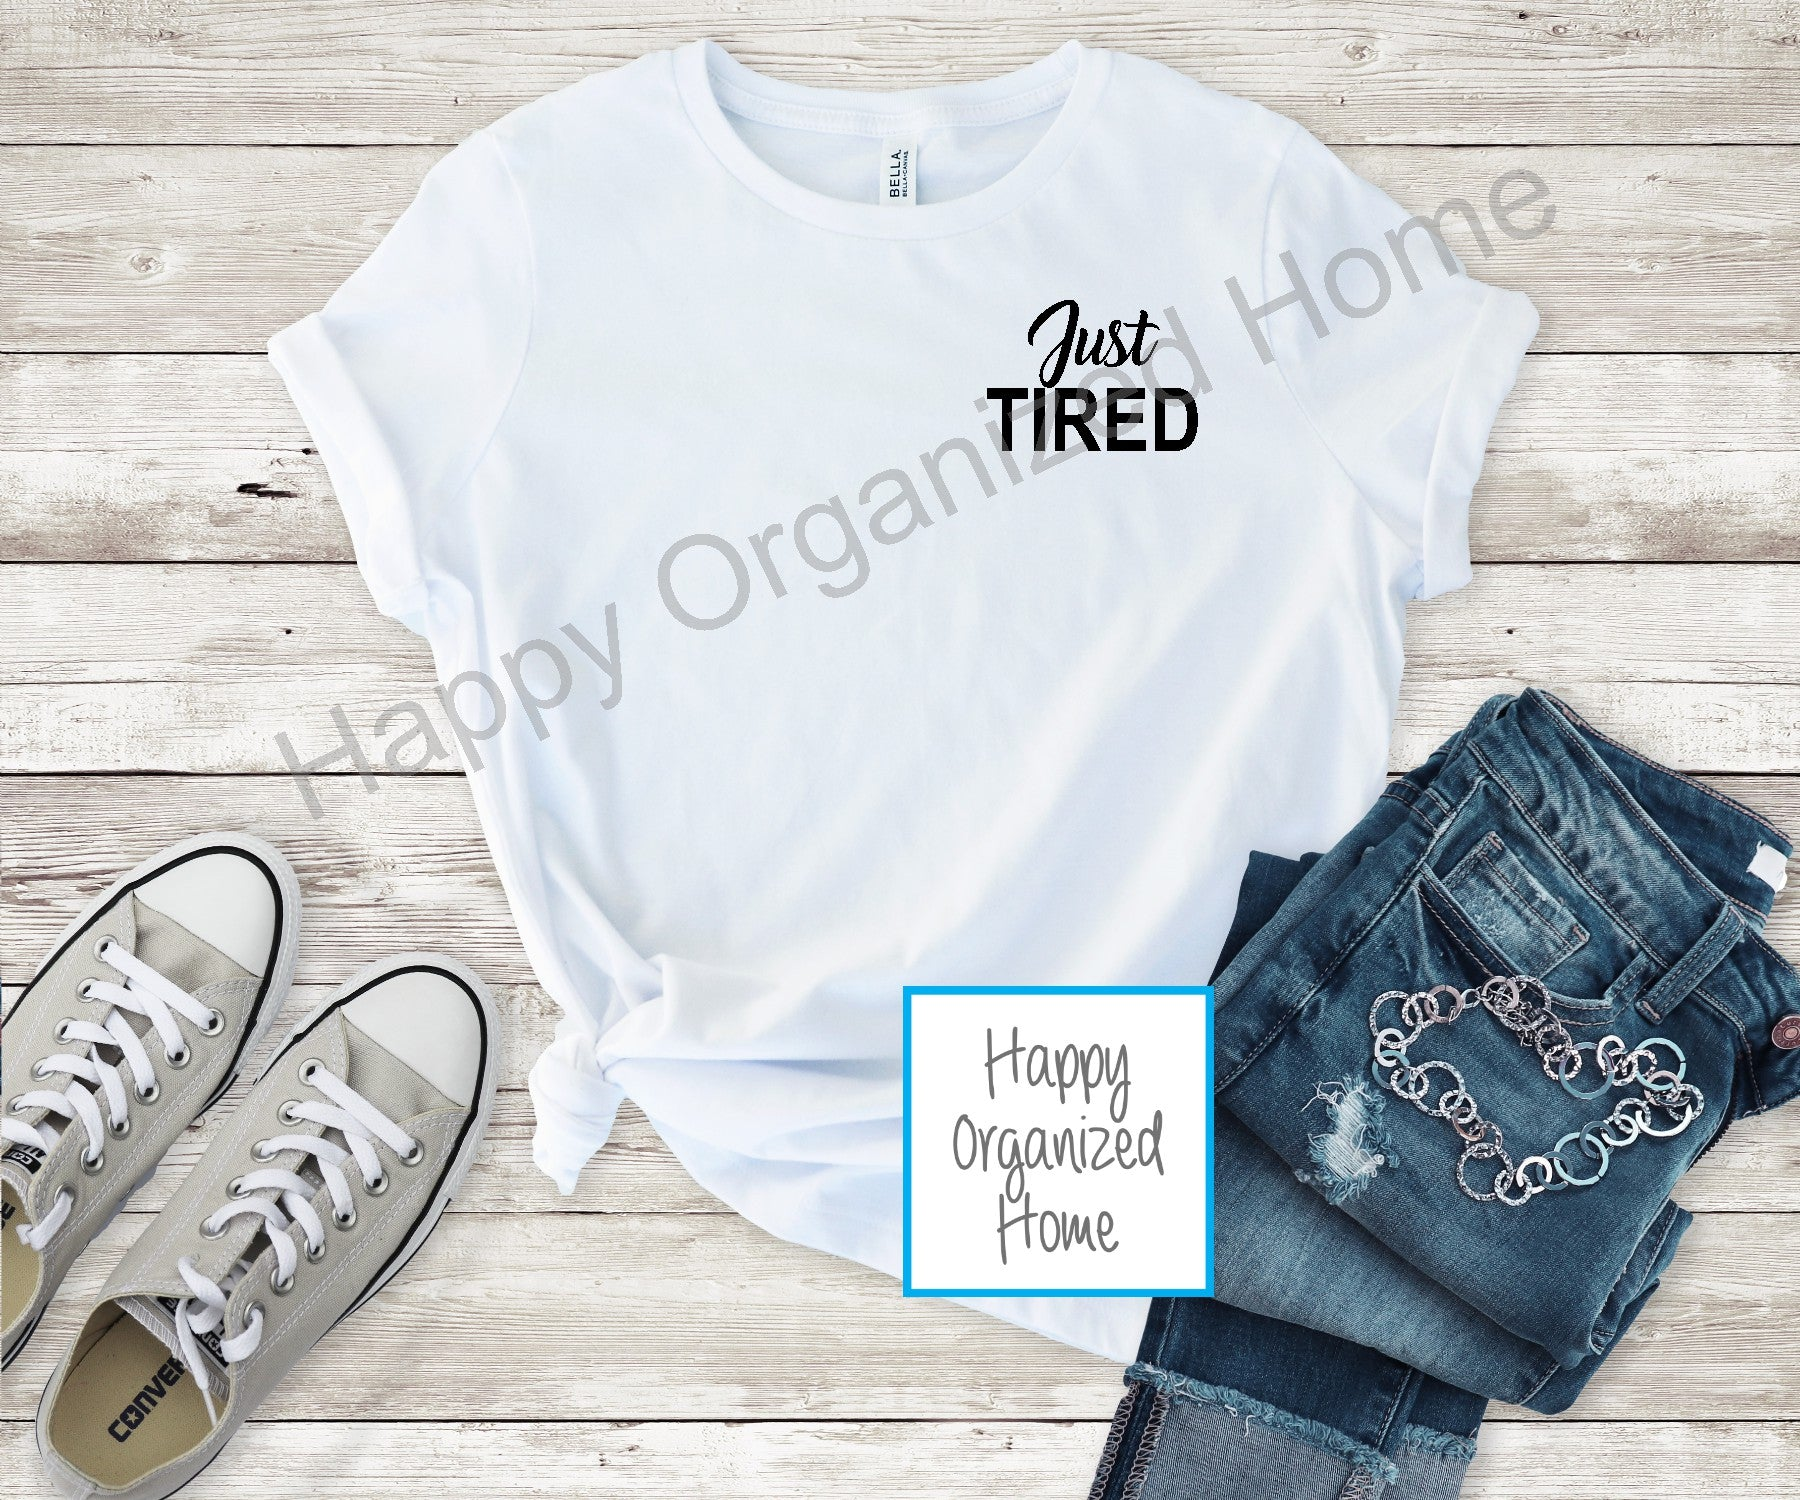 Just Tired - Ladies Relaxed Fit T-shirt